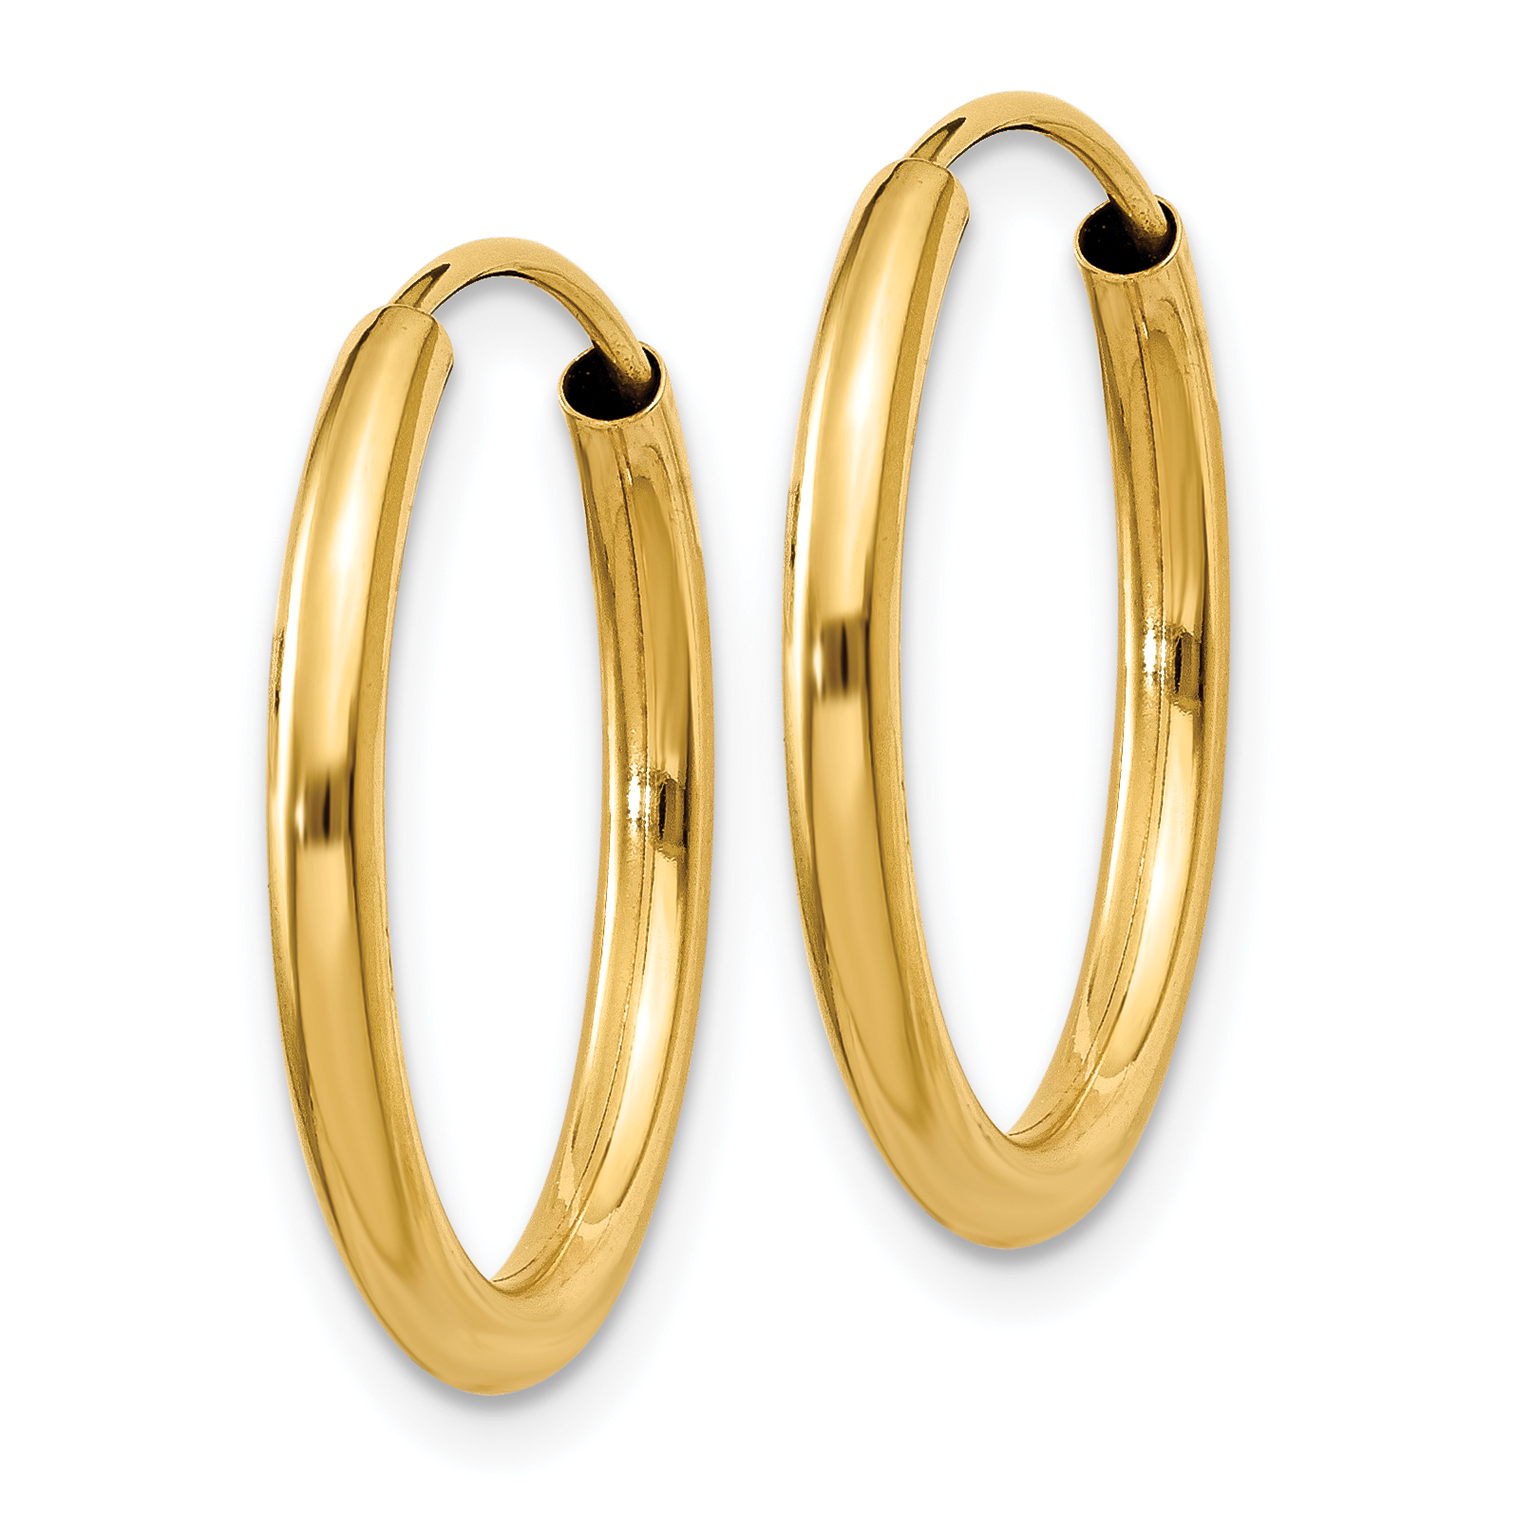 14k Yellow Gold Round Endless 2mm Hoop Earrings Ear Hoops Set Fine Jewelry Gifts For Women For Her - image 2 of 3